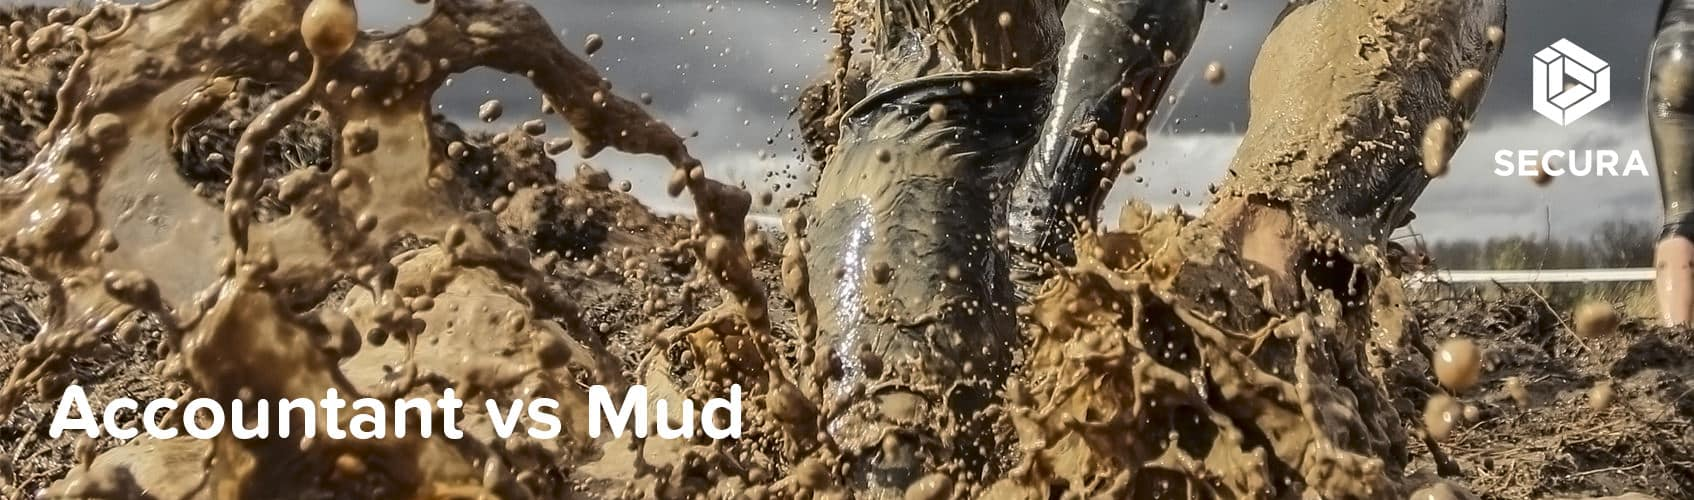 Accountant vs Mud - Eddie Takes on the Tough Mudder Event